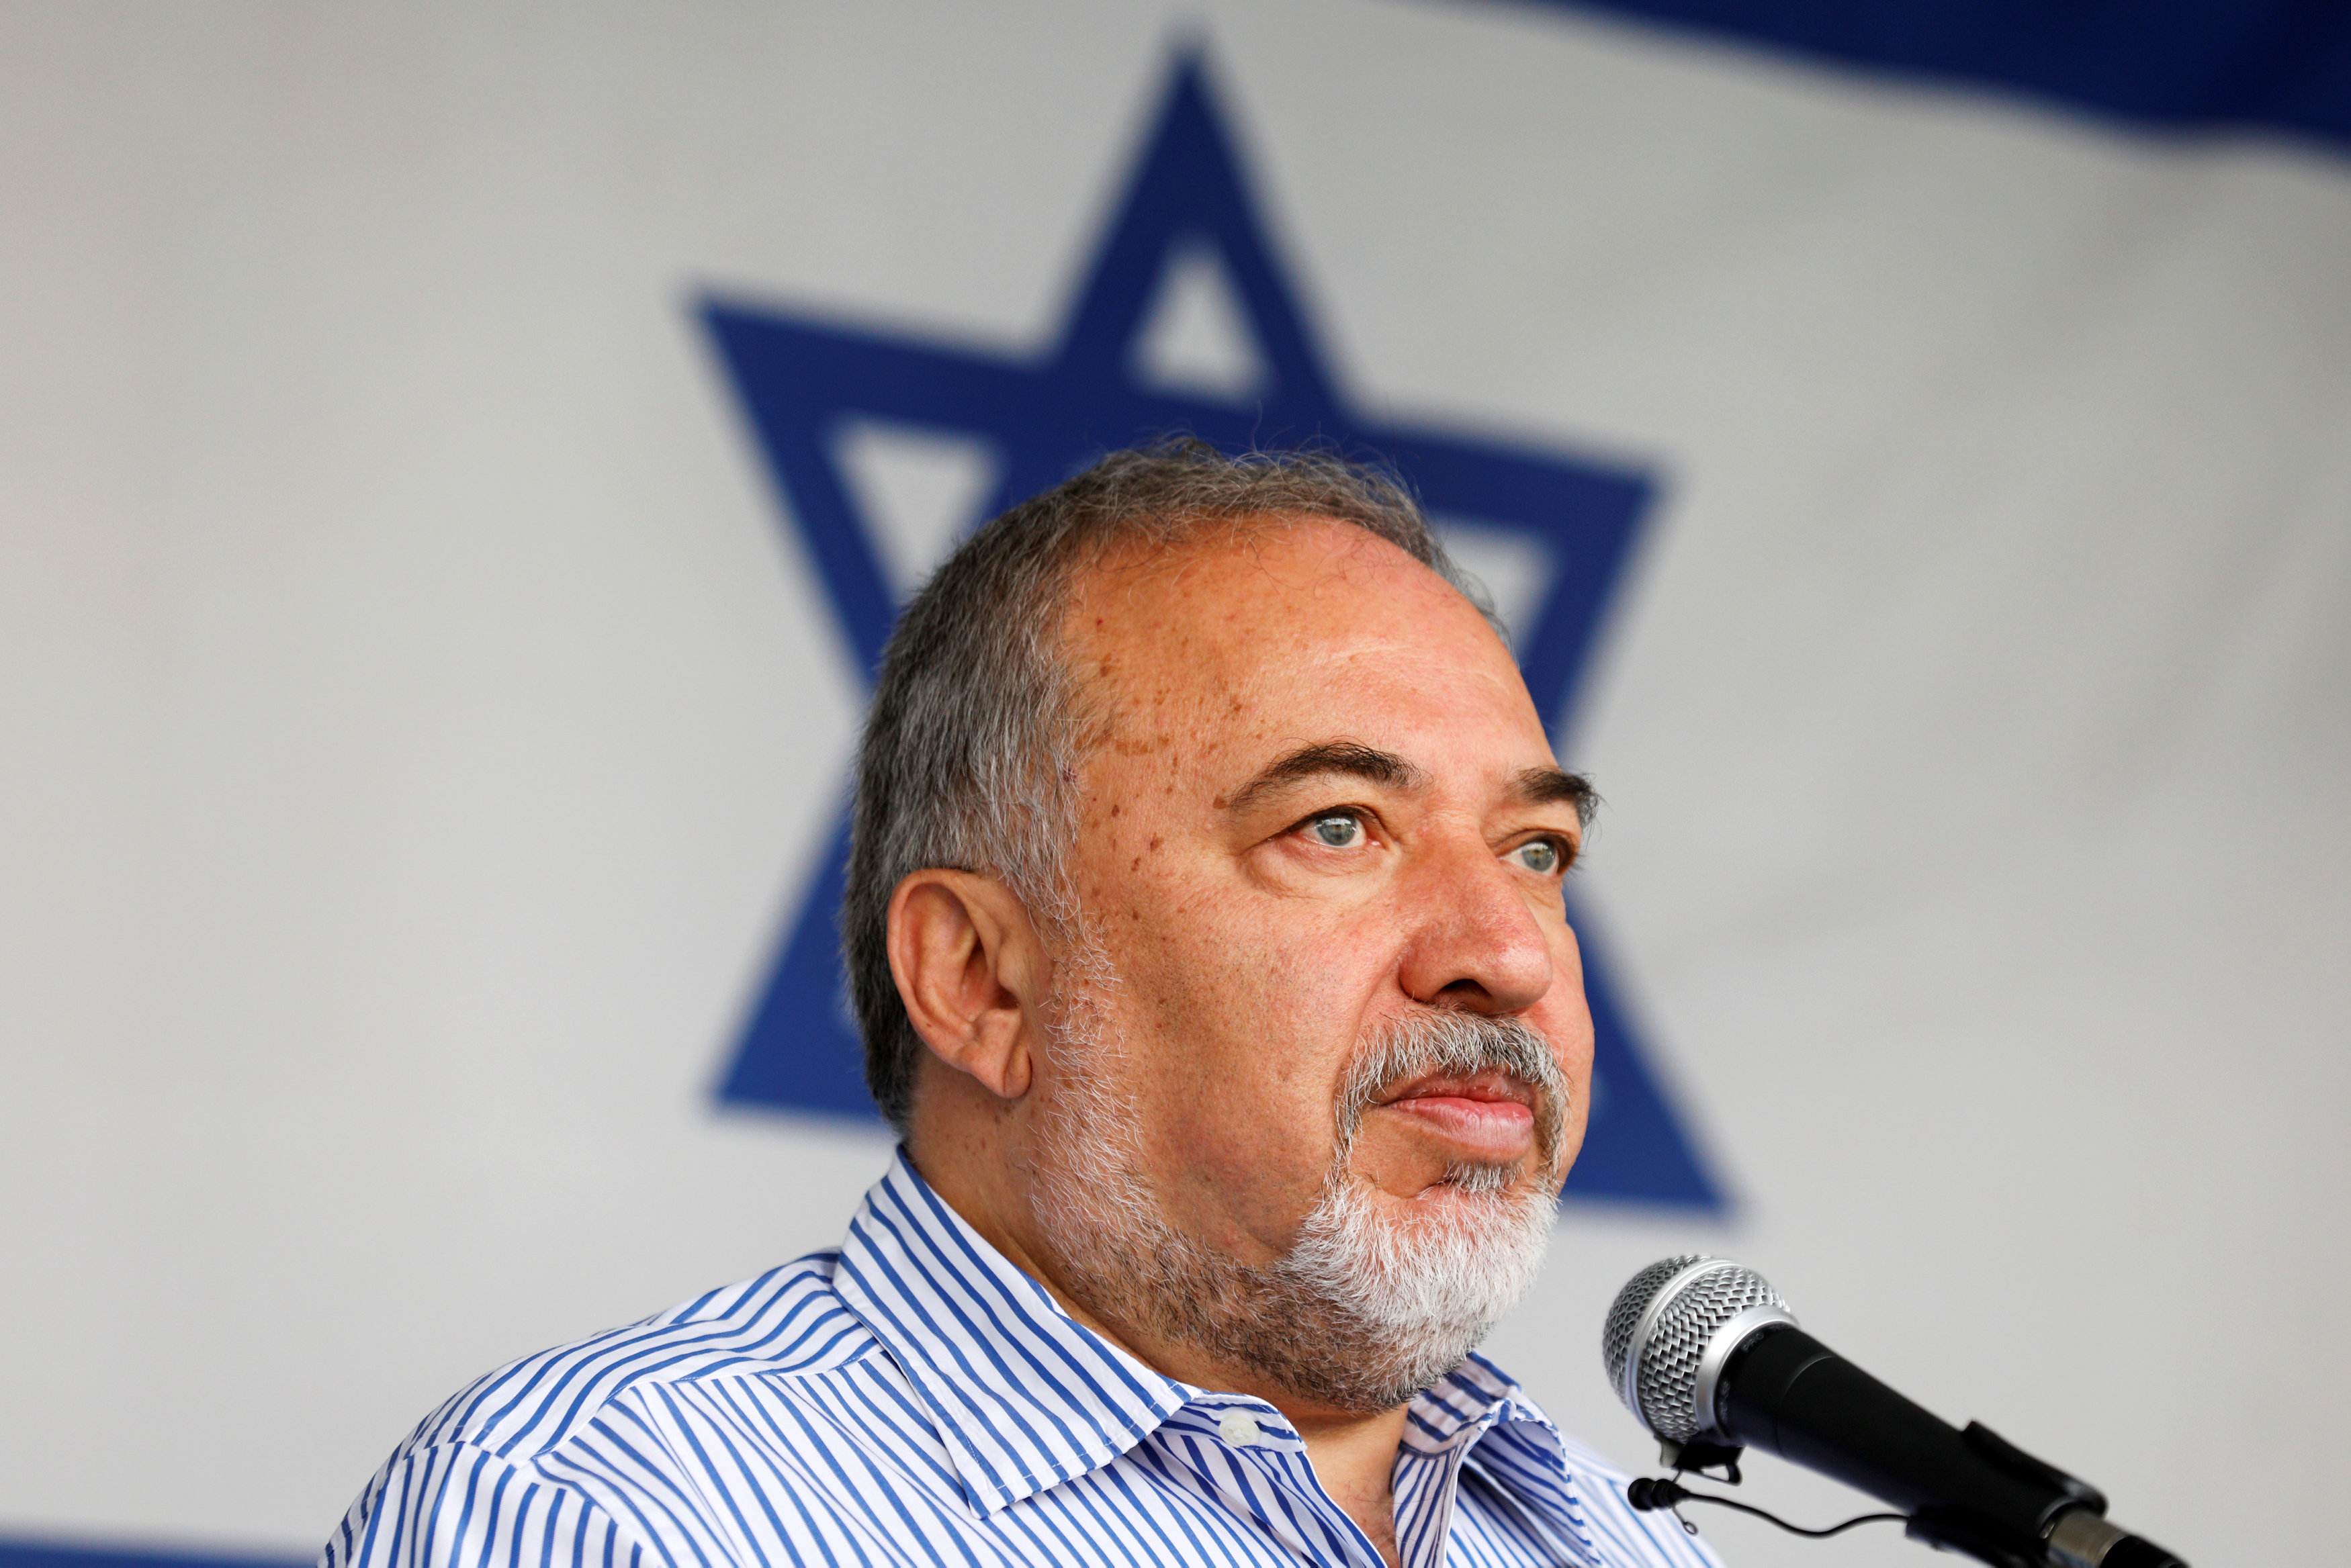 FILE PHOTO: Israeli Defense Minister Avigdor Lieberman visits Gaza's Kerem Shalom crossing, the strip's main commercial border terminal, July 22, 2018. REUTERS/Amir Cohen/File Photo